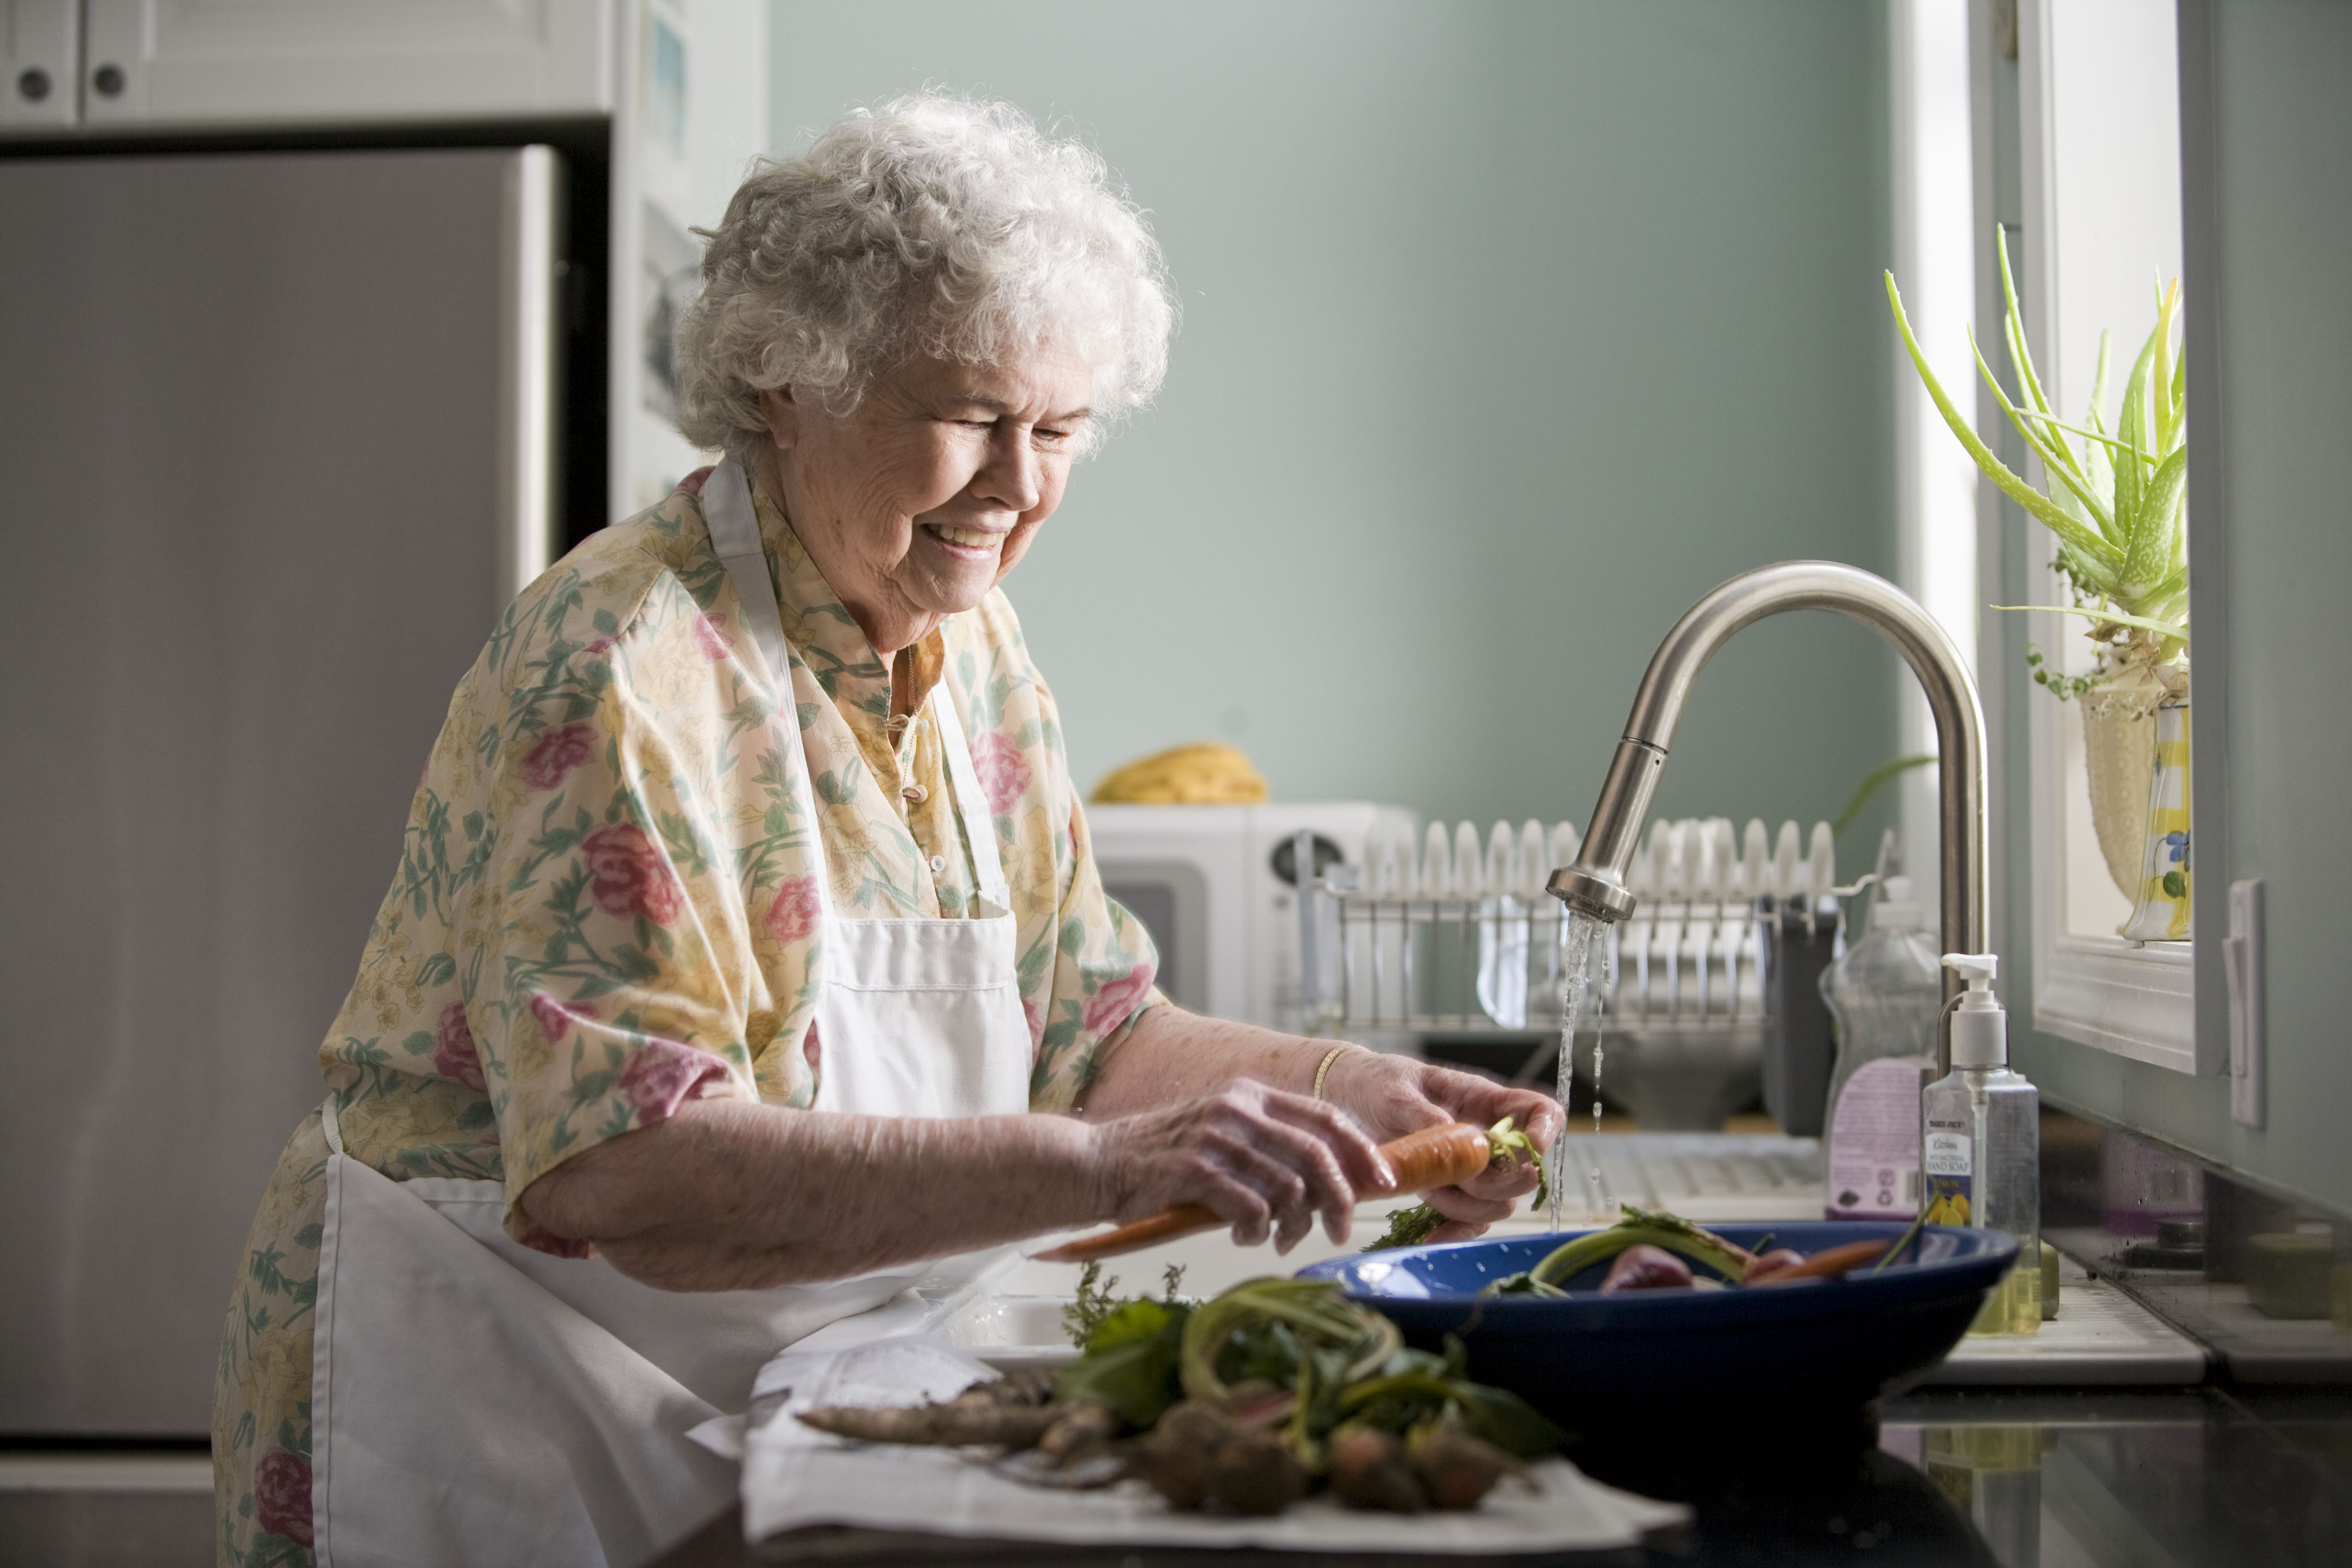 5 Ways Seniors Can Make Their Homes Safer For Aging In Place